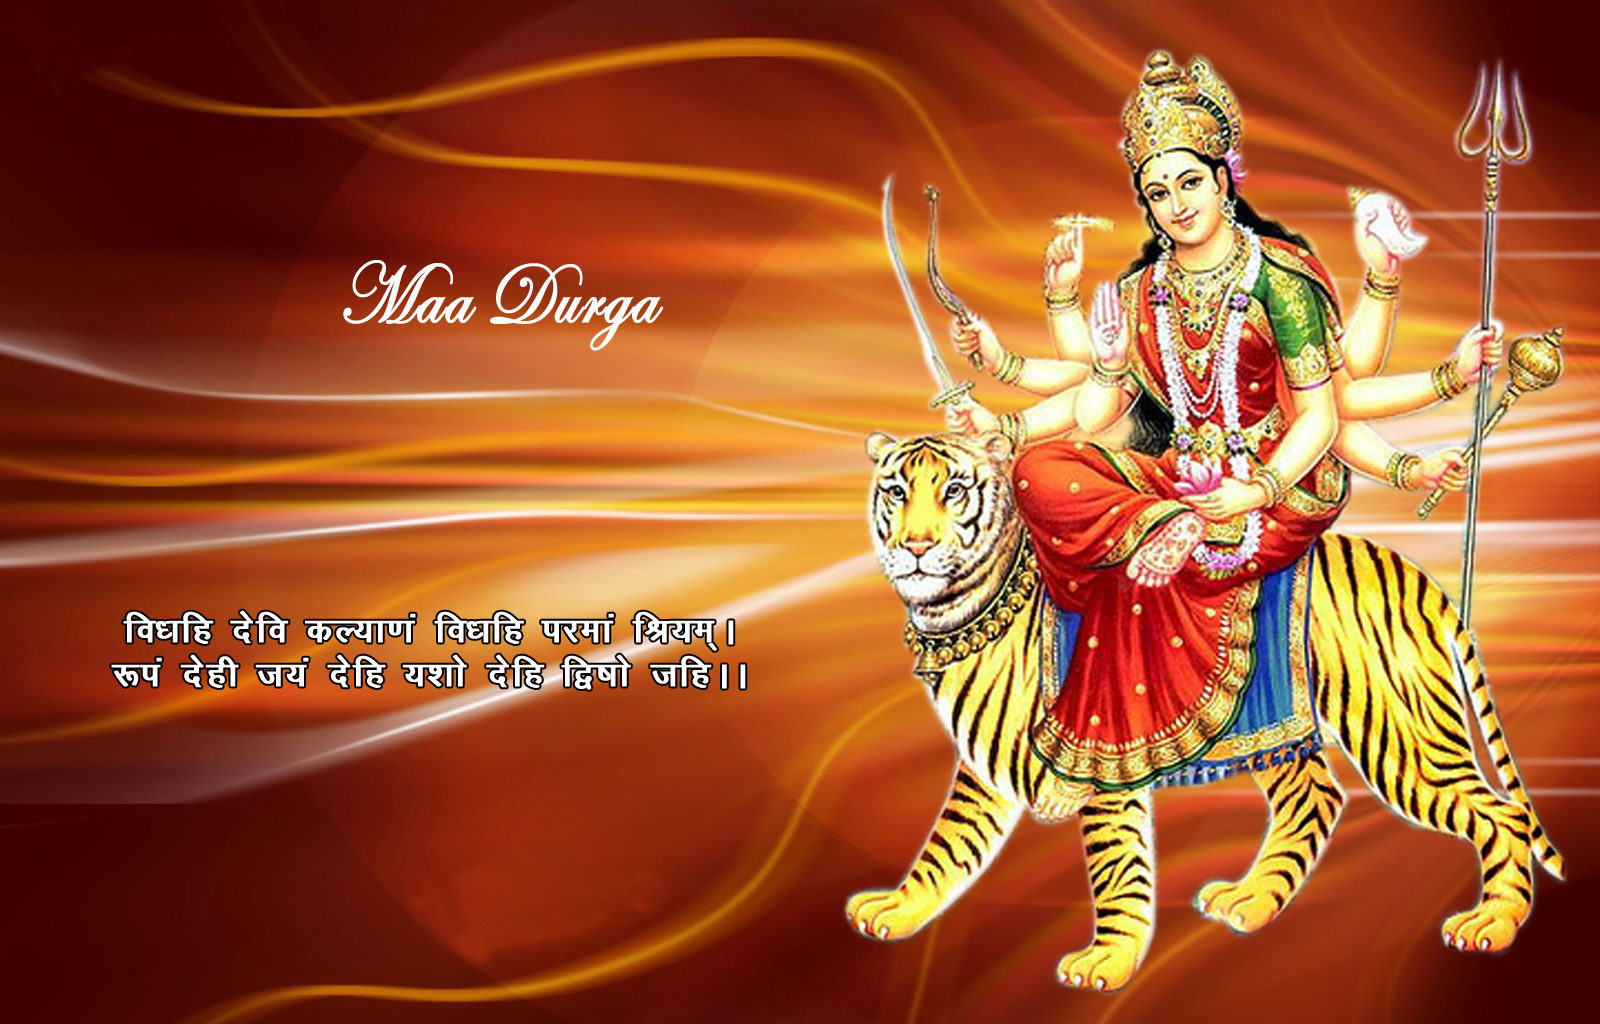 Download Jai Mata Di HD Wallpapers APK latest version app for